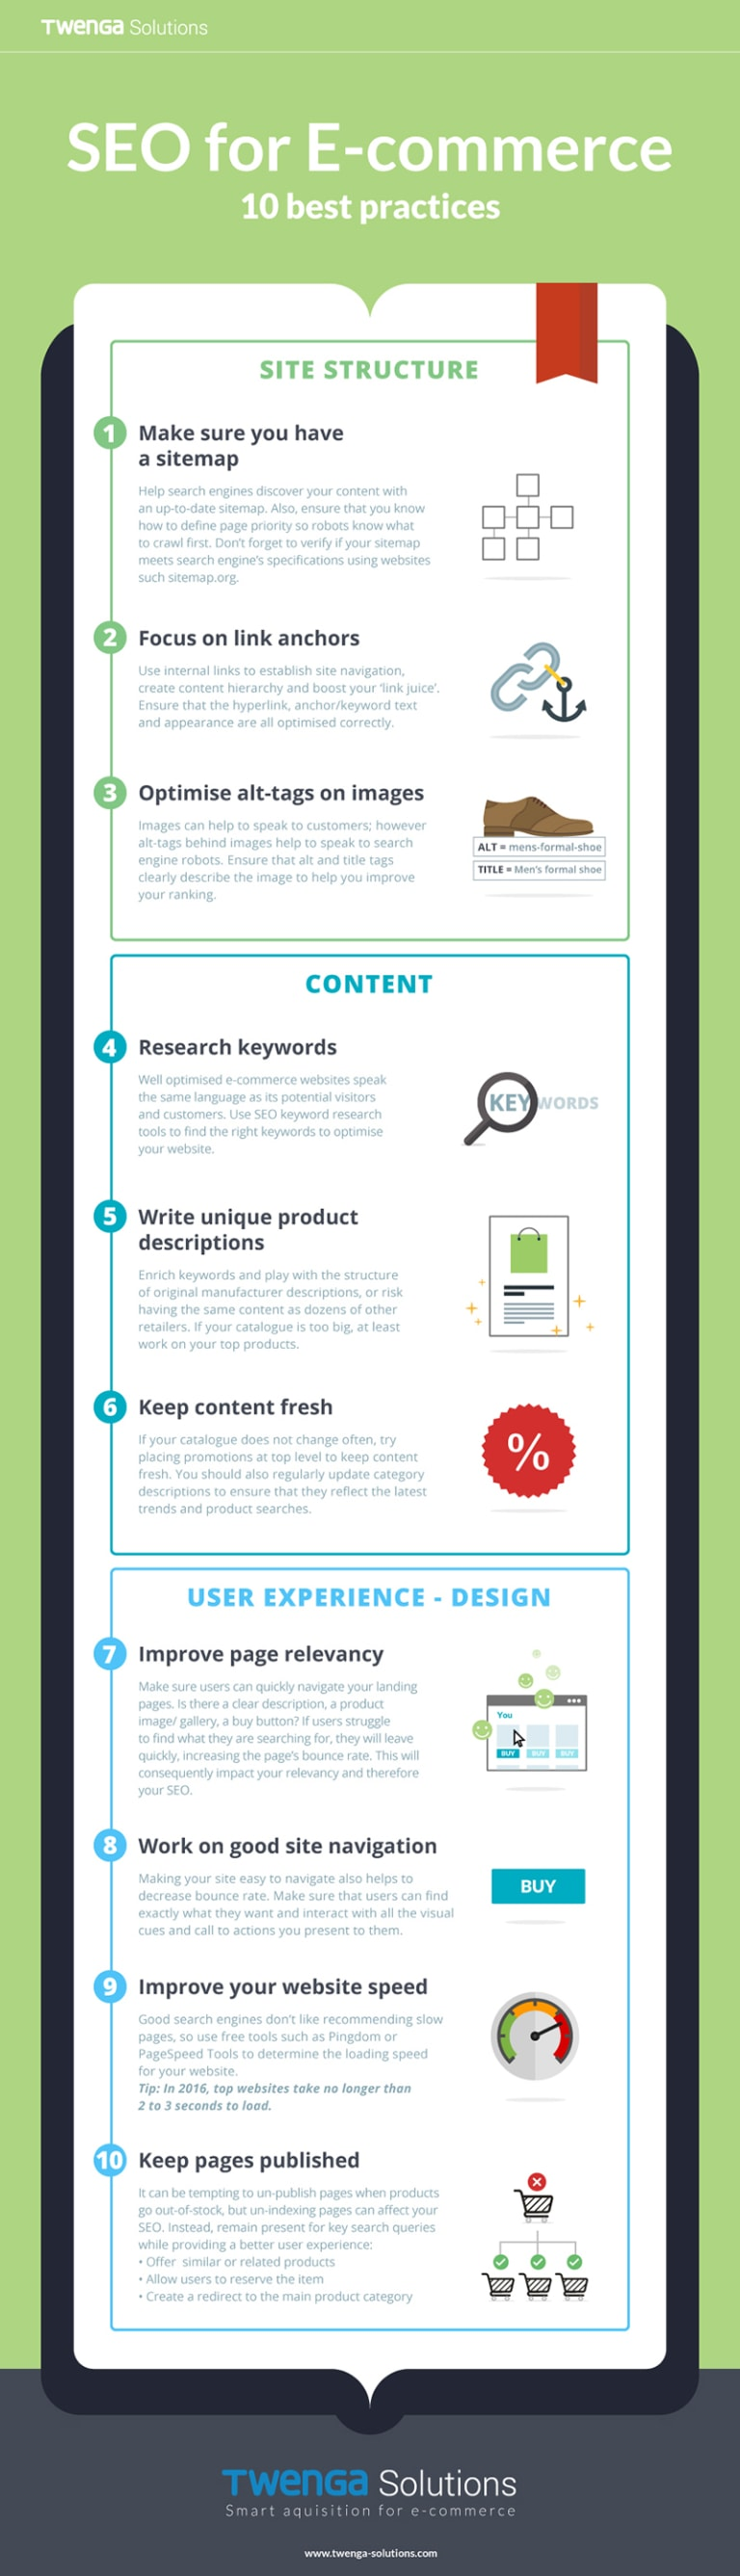 Infographic outlines eCommerce SEO tips